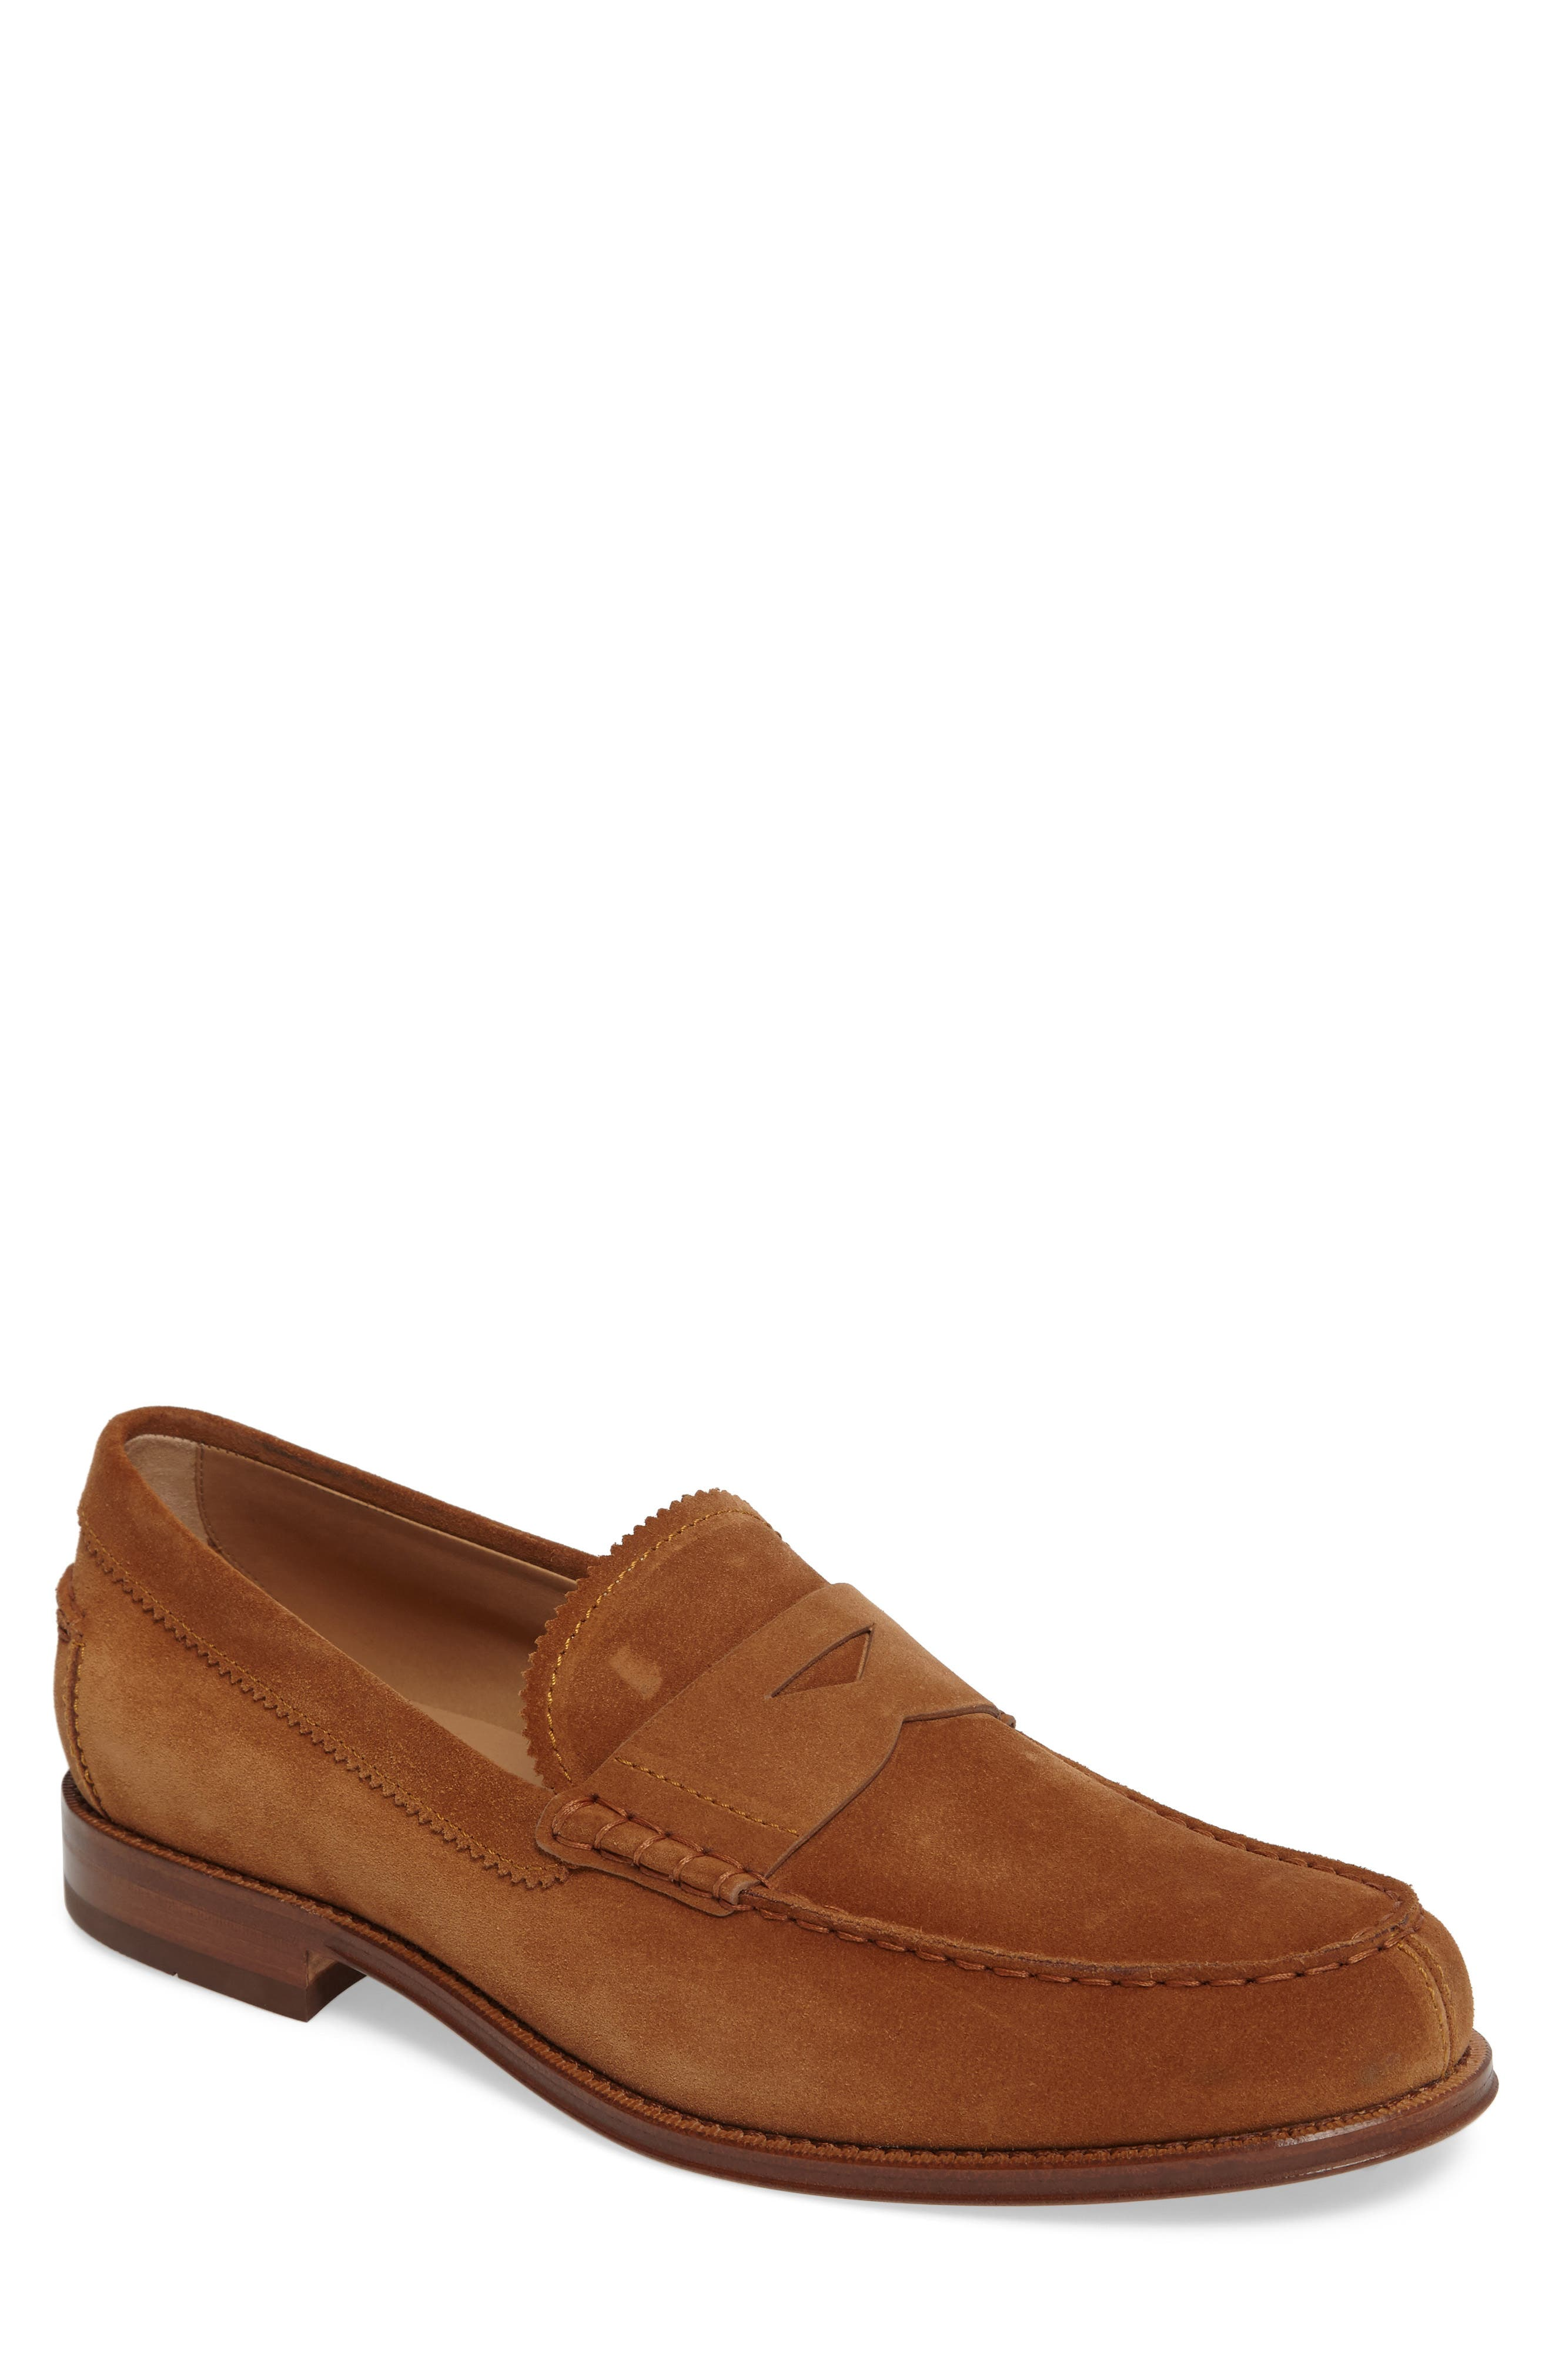 Suede Penny Loafer,                         Main,                         color, 215